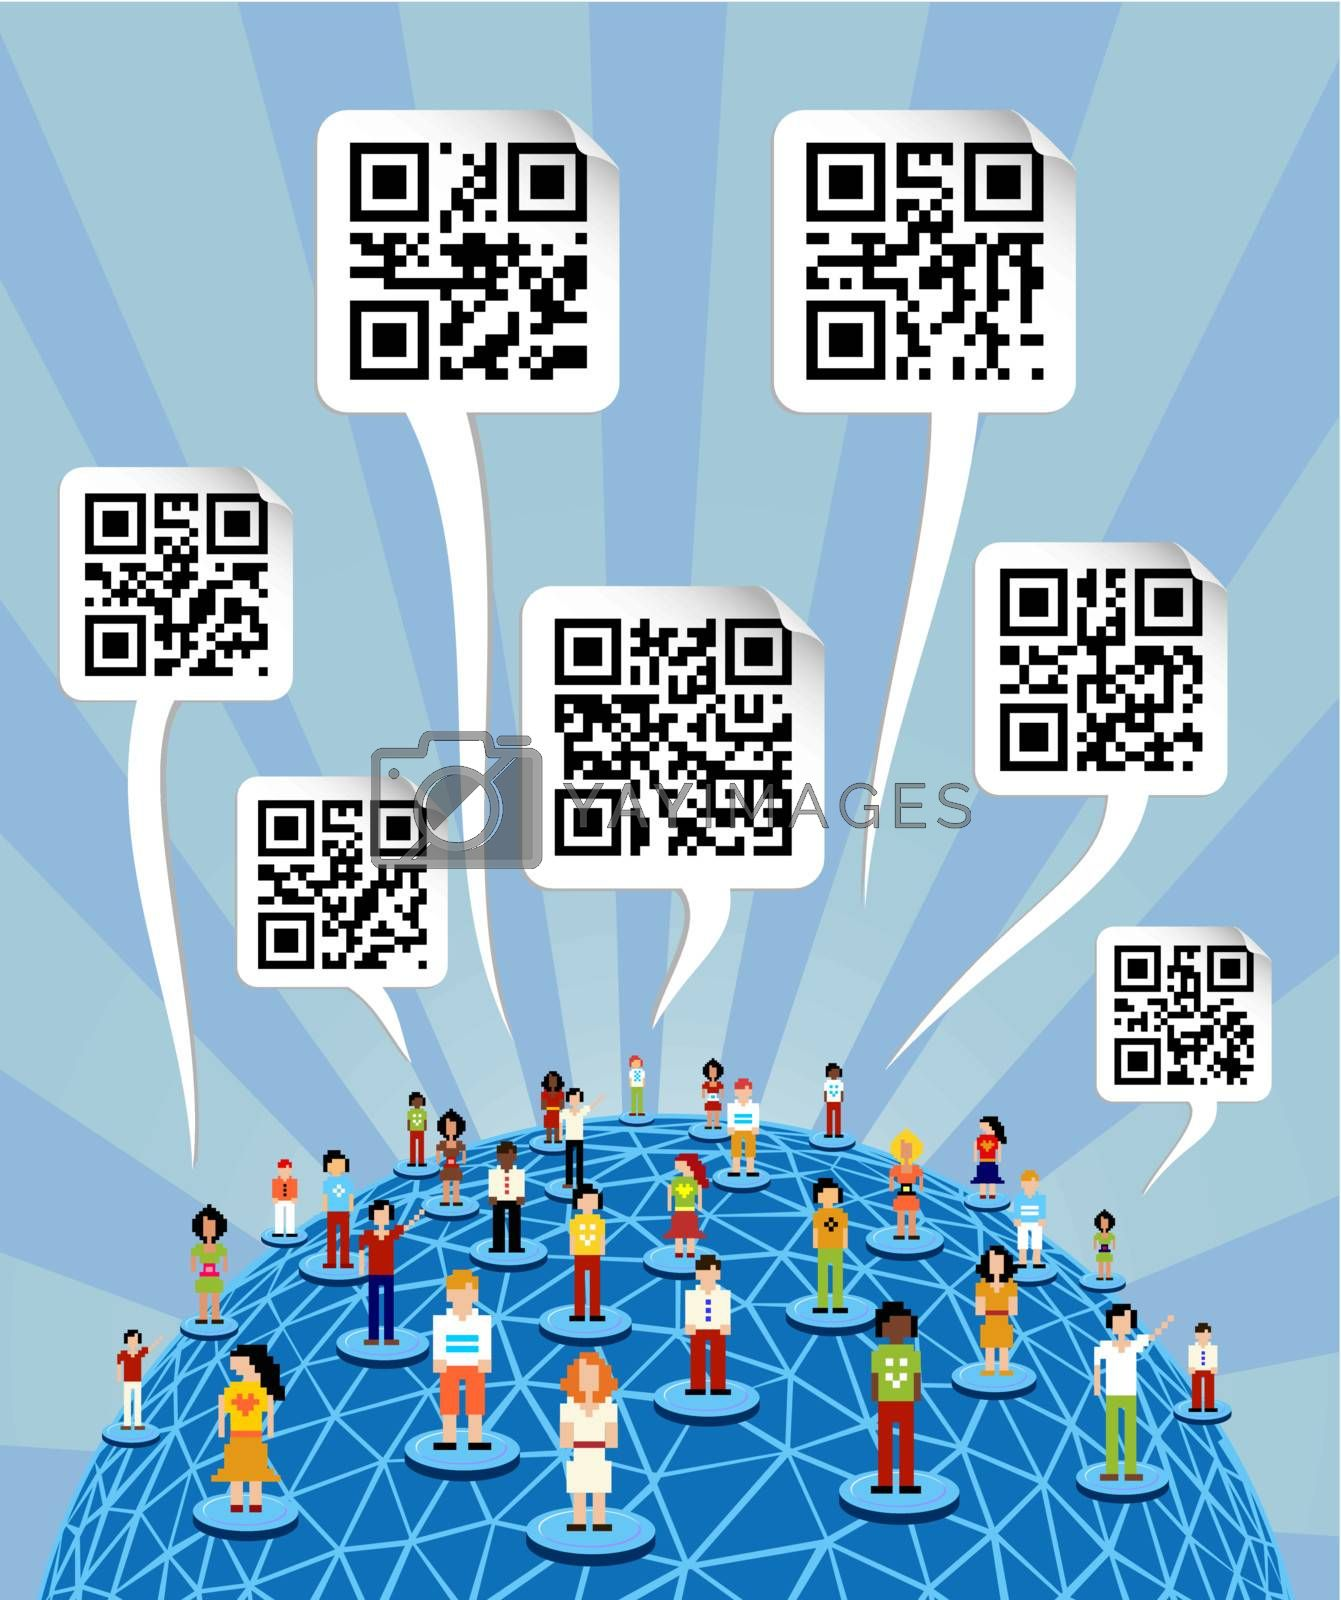 Social media people network connection concept with social QR codes in bubbles speech over World globe.